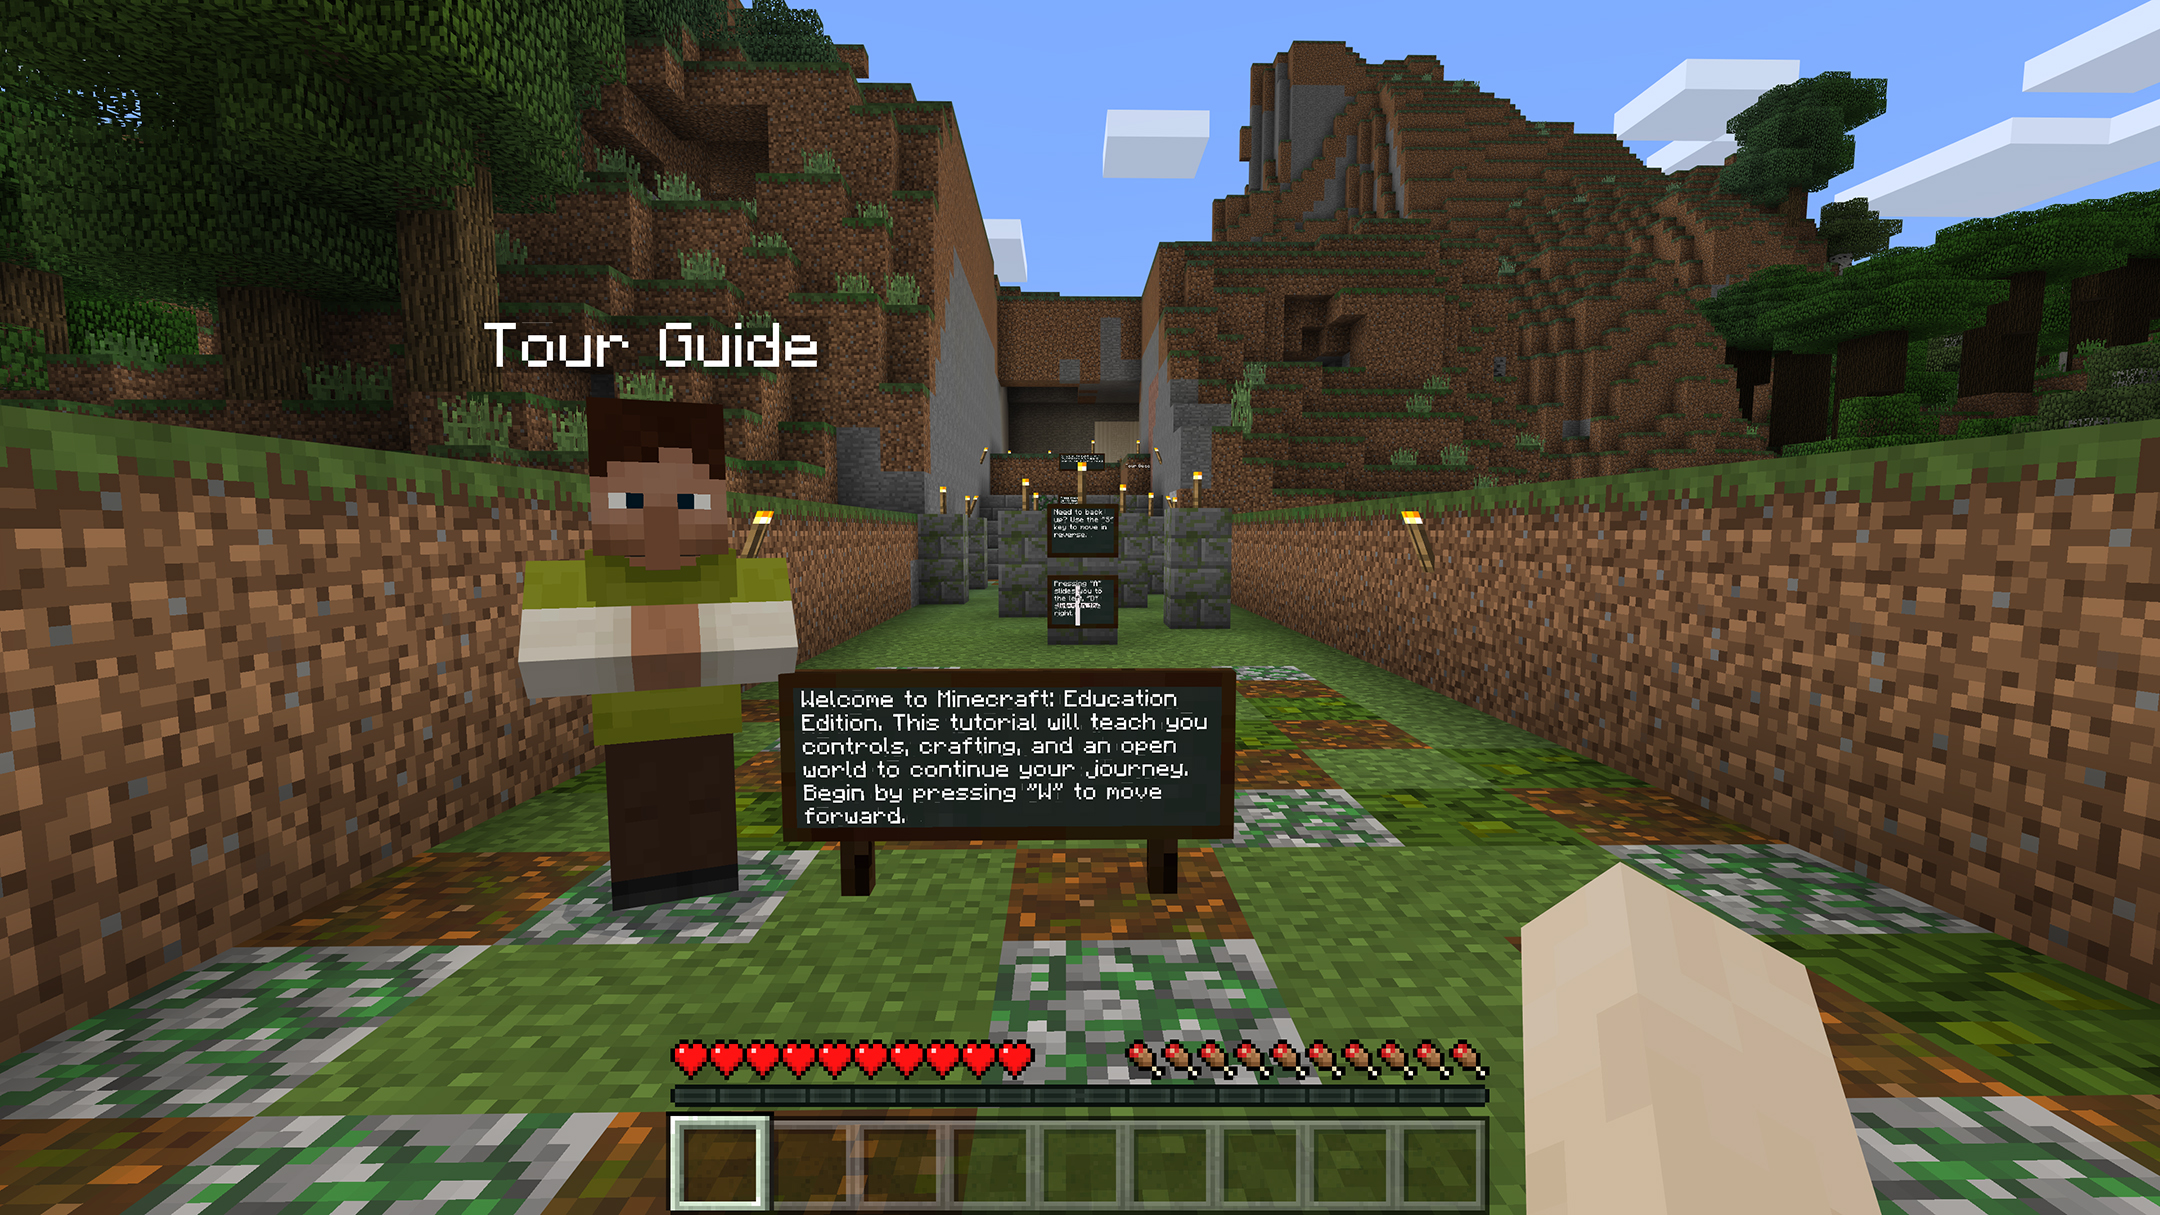 a screenshot from minecraft that introduces the game to new users